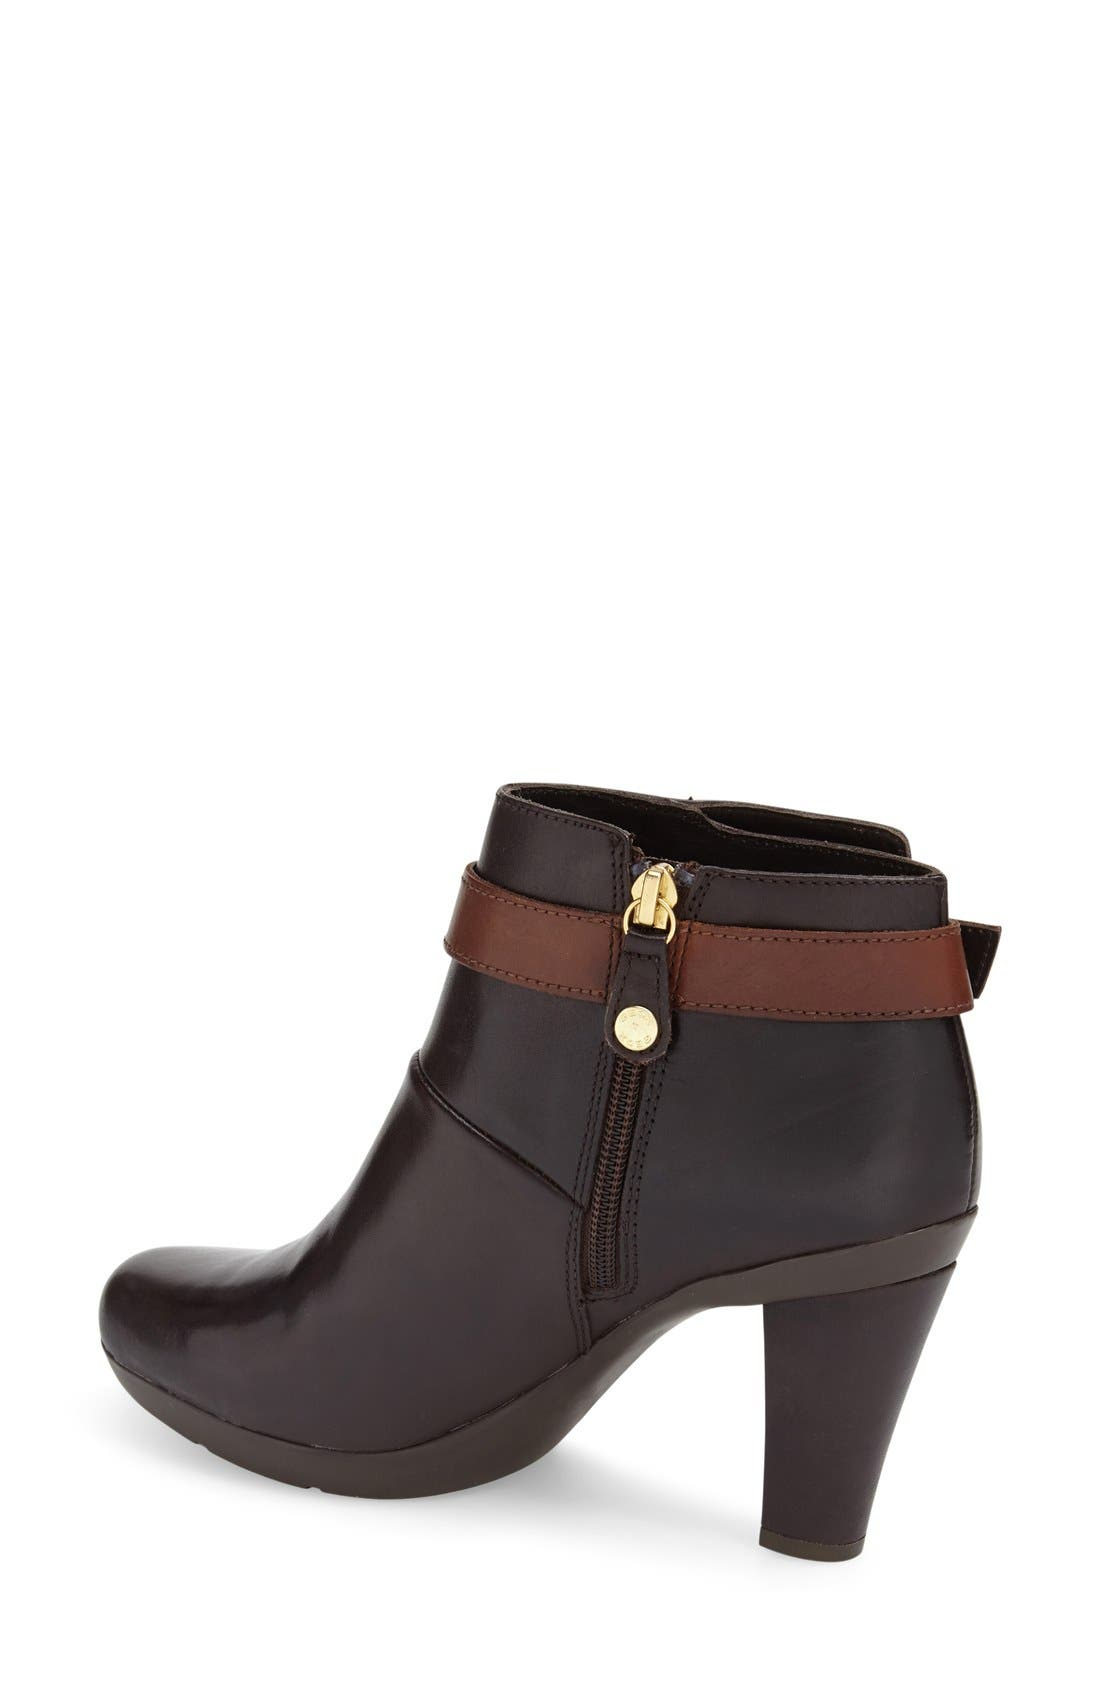 'Inspiration' Bootie,                             Alternate thumbnail 2, color,                             Dark Brown Smooth Leather